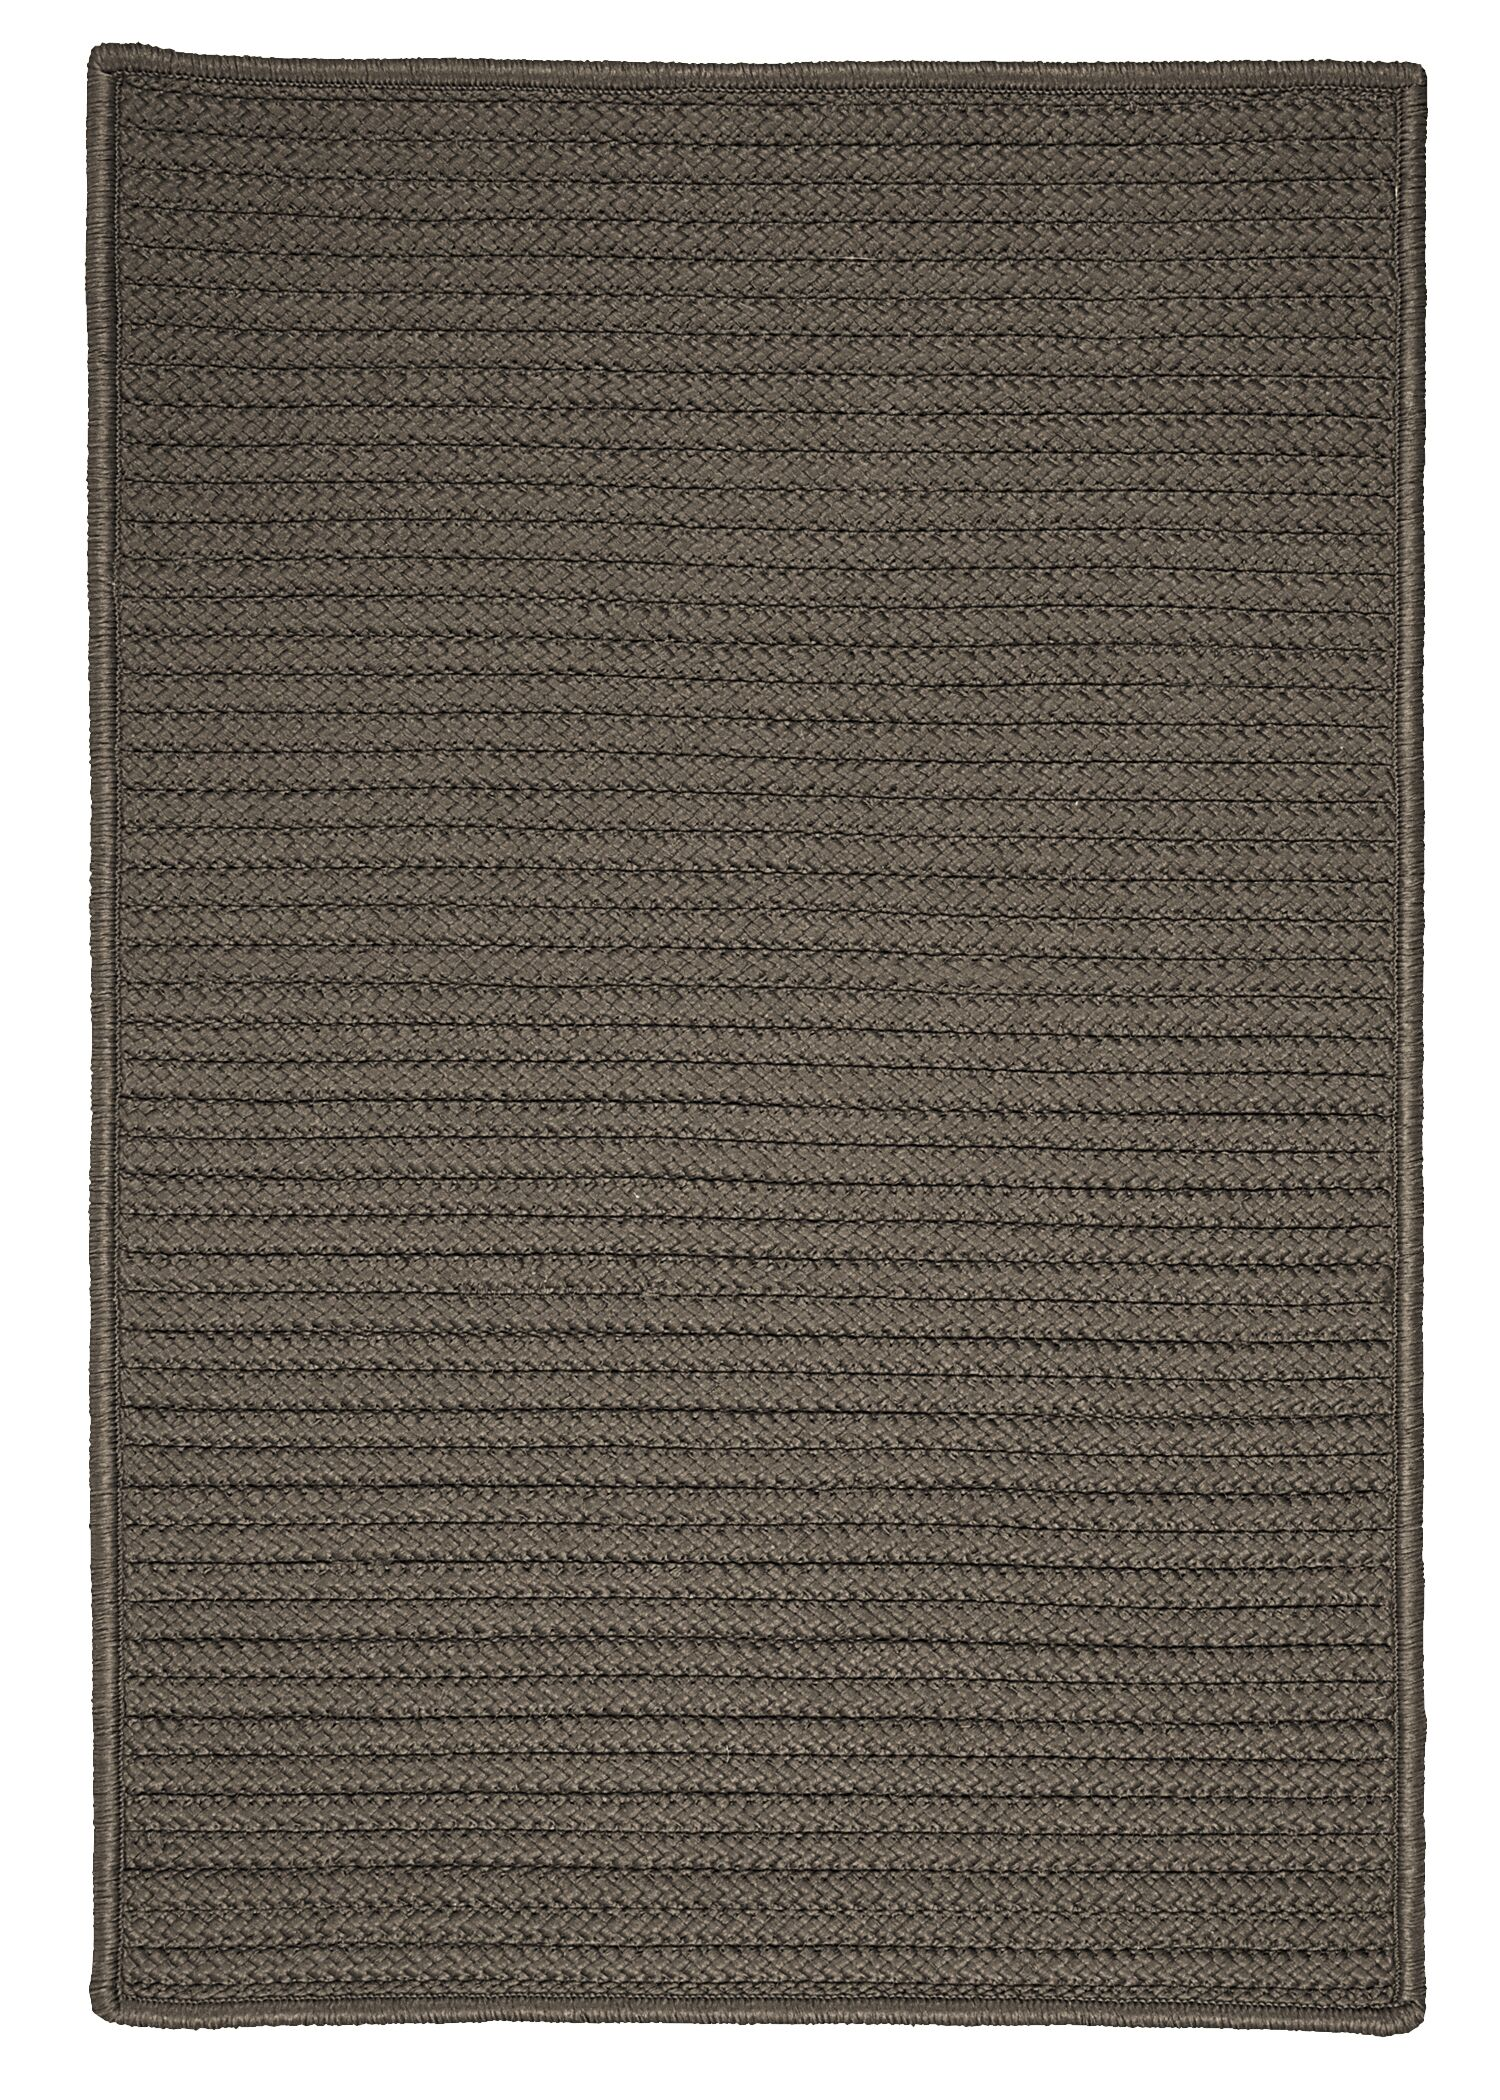 Glasgow Gray Solid Indoor/Outdoor Area Rug Rug Size: Rectangle 12' x 15'